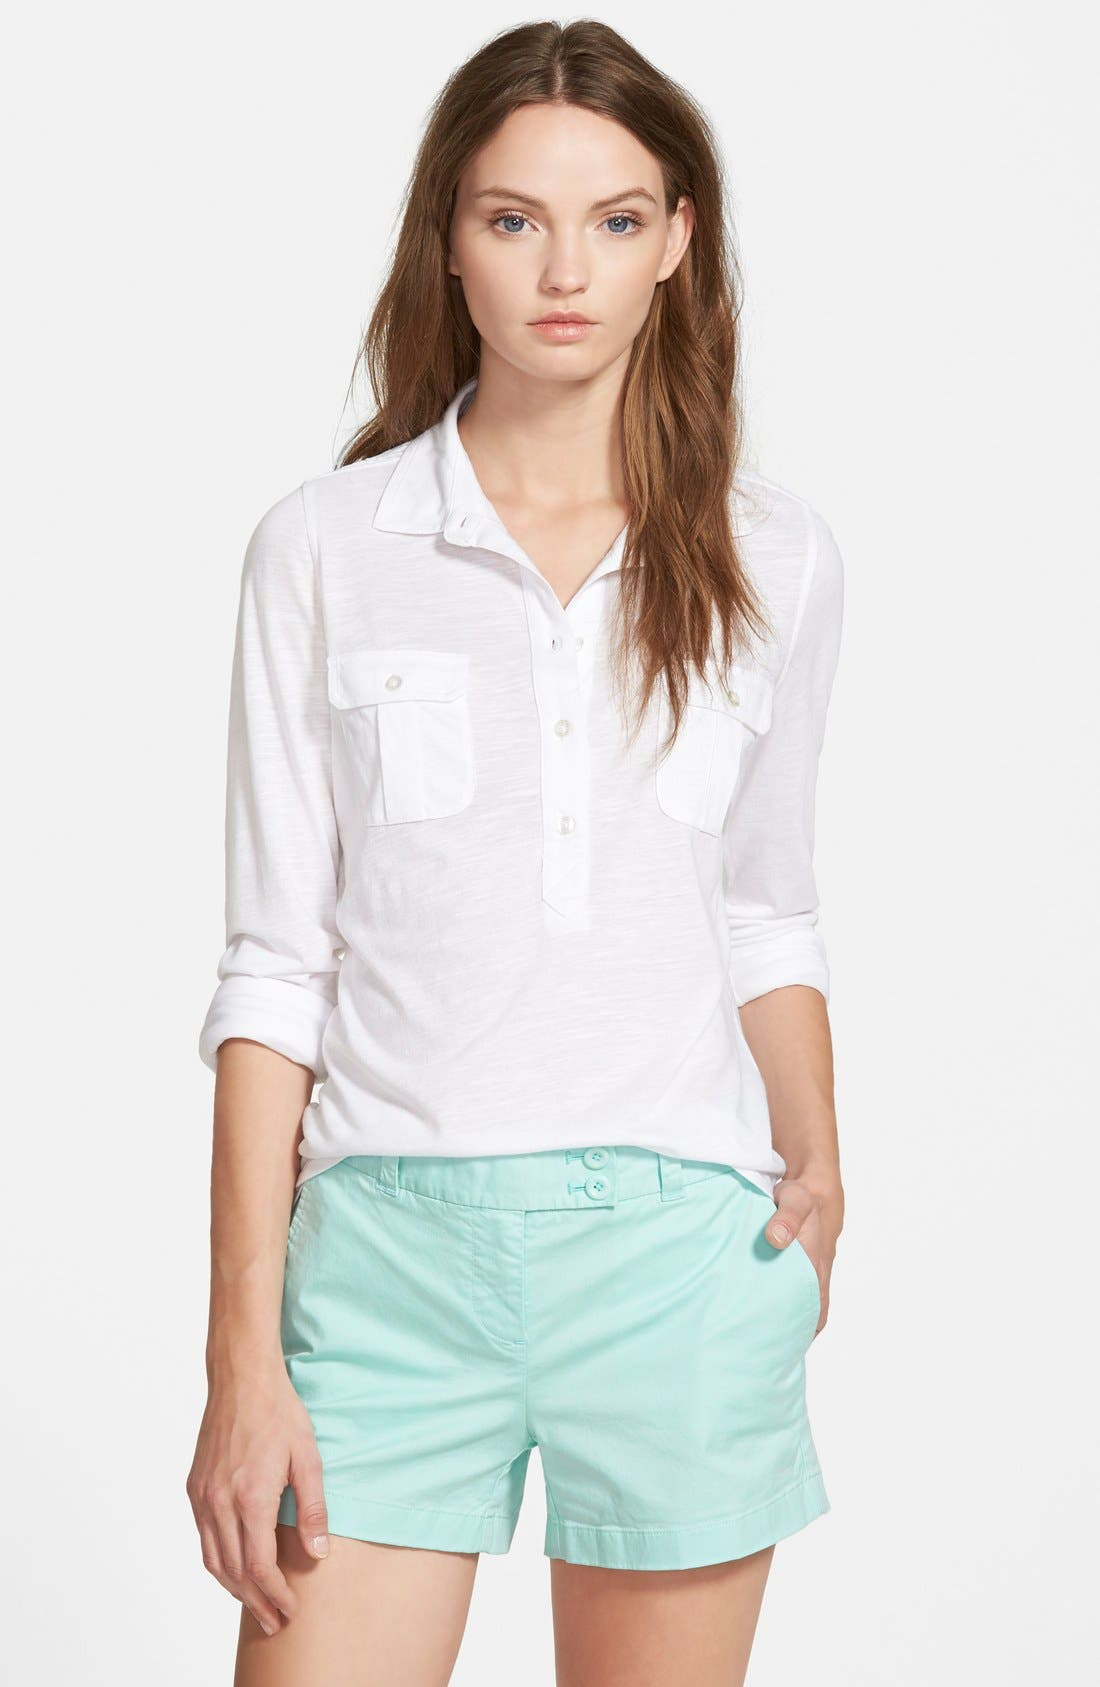 Alternate Image 1 Selected - Vineyard Vines Eyelet Yoke Top